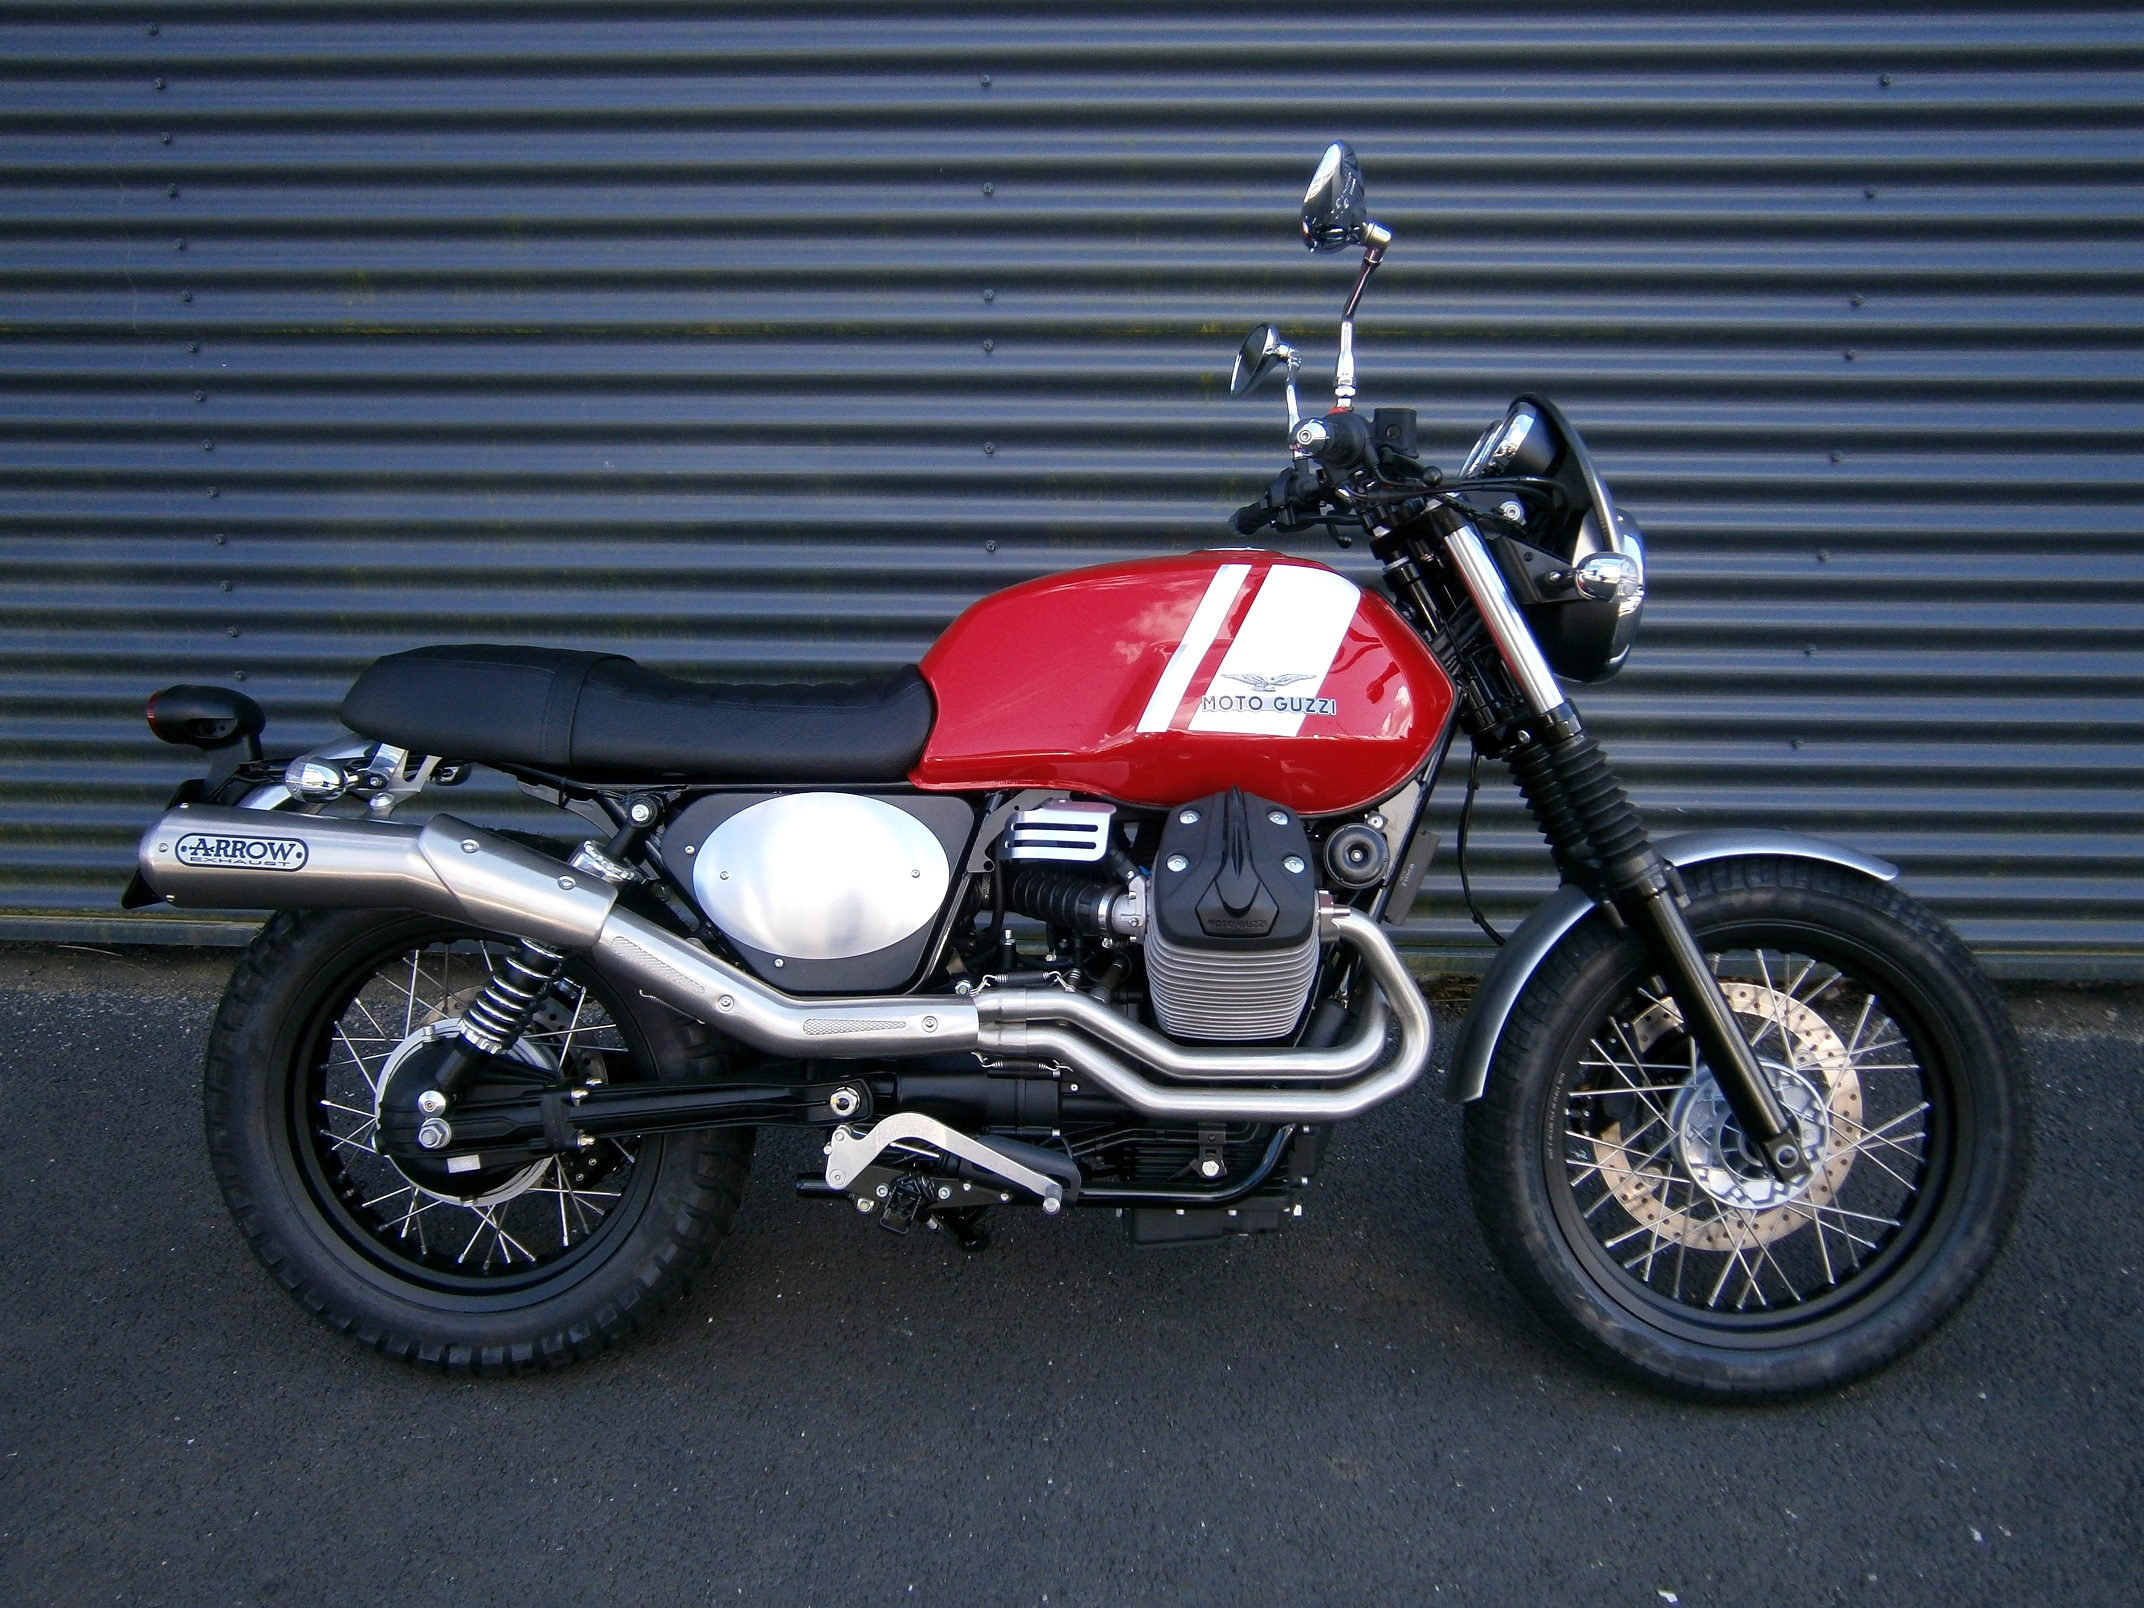 moto guzzi v7 ii scrambler concessionnaire moto et scooter brest finist re 29 vente. Black Bedroom Furniture Sets. Home Design Ideas